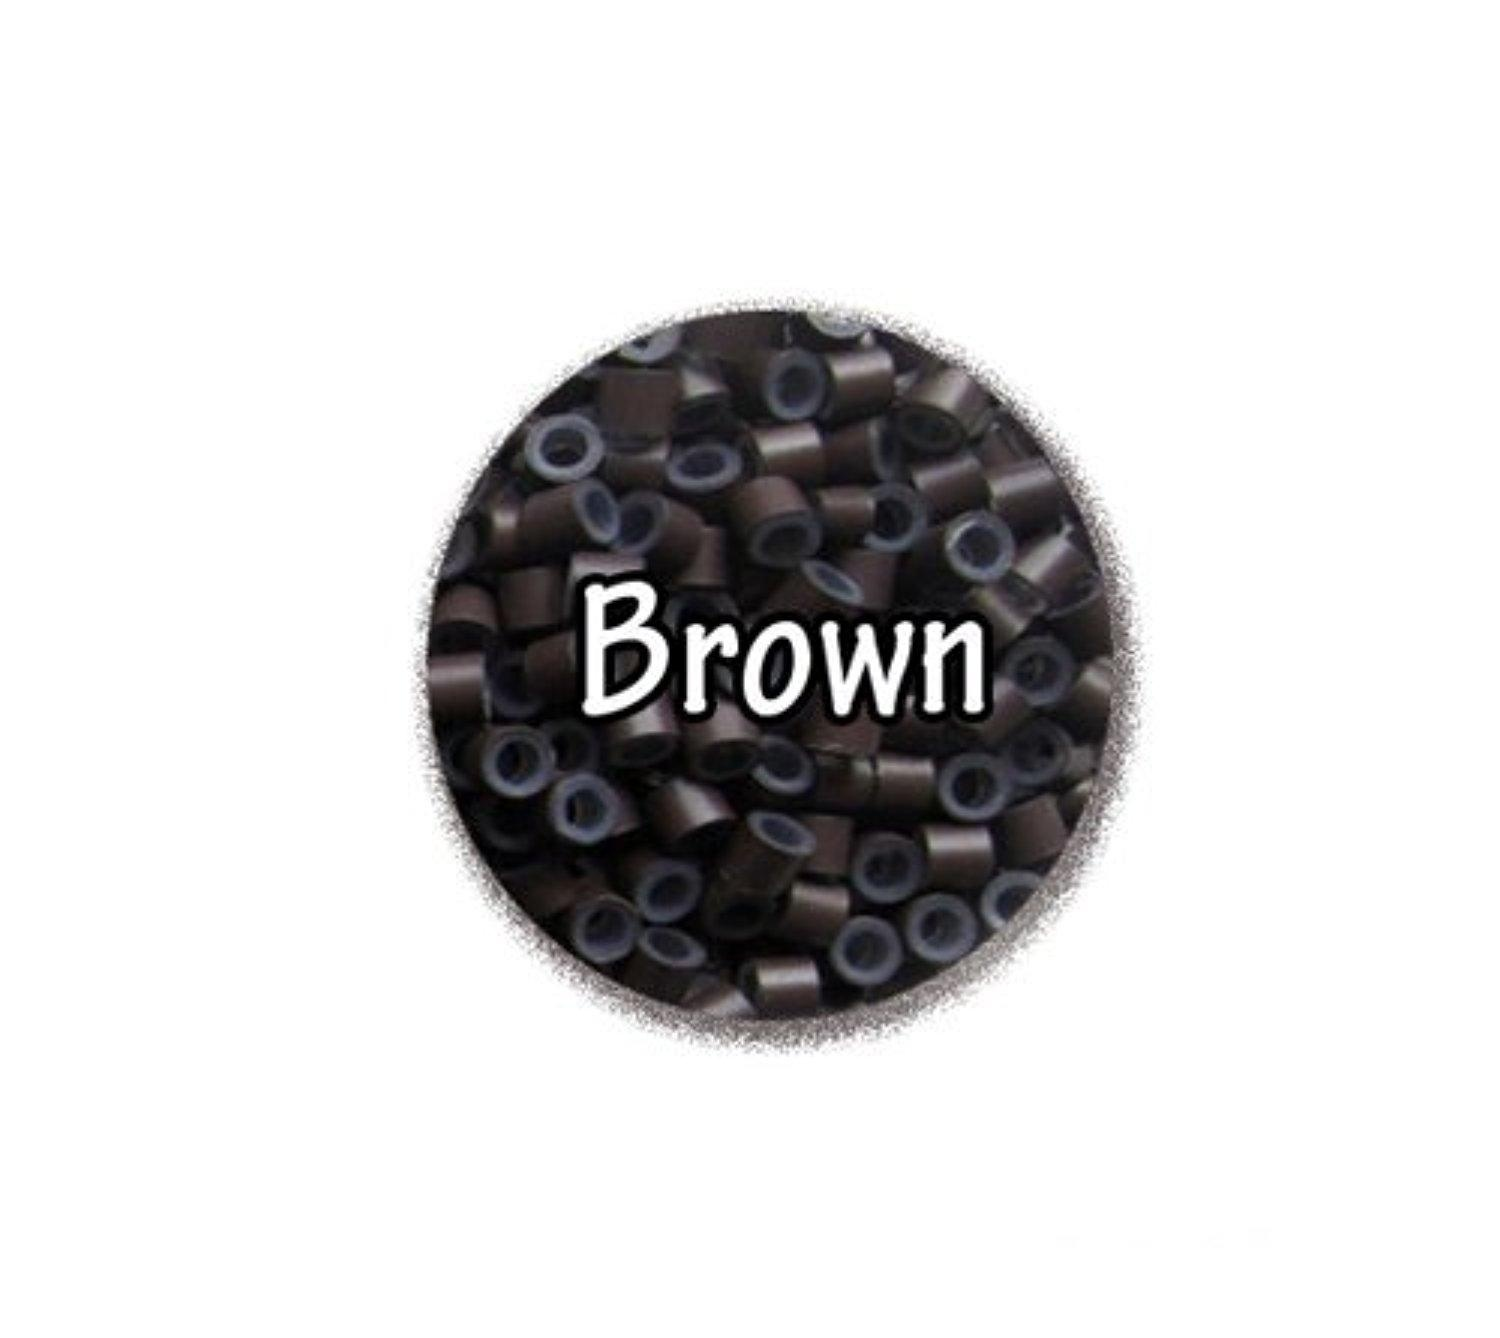 Silicone Micro Rings Beads - 100 Brown 5mm rings for I Tip Hair Extensions or Feather Hair Extensions by Kiara H&B